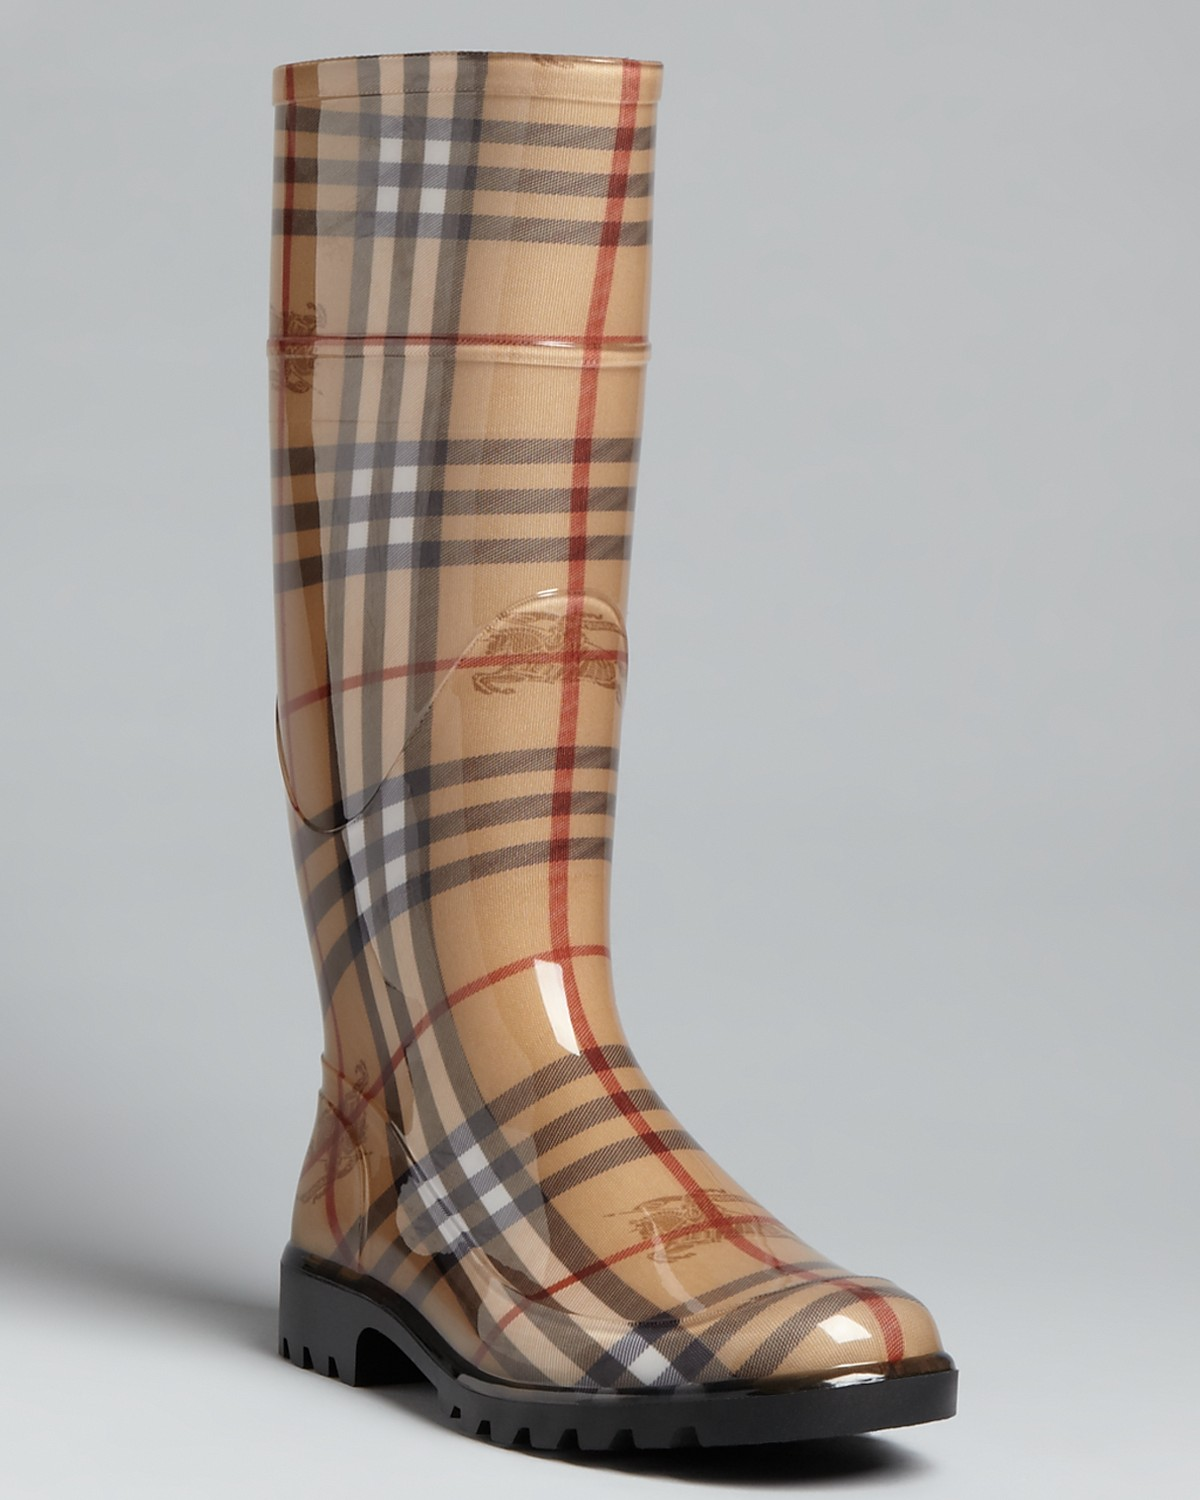 Burberry Rain Boots - Haymarket Check Plaid | Bloomingdale's